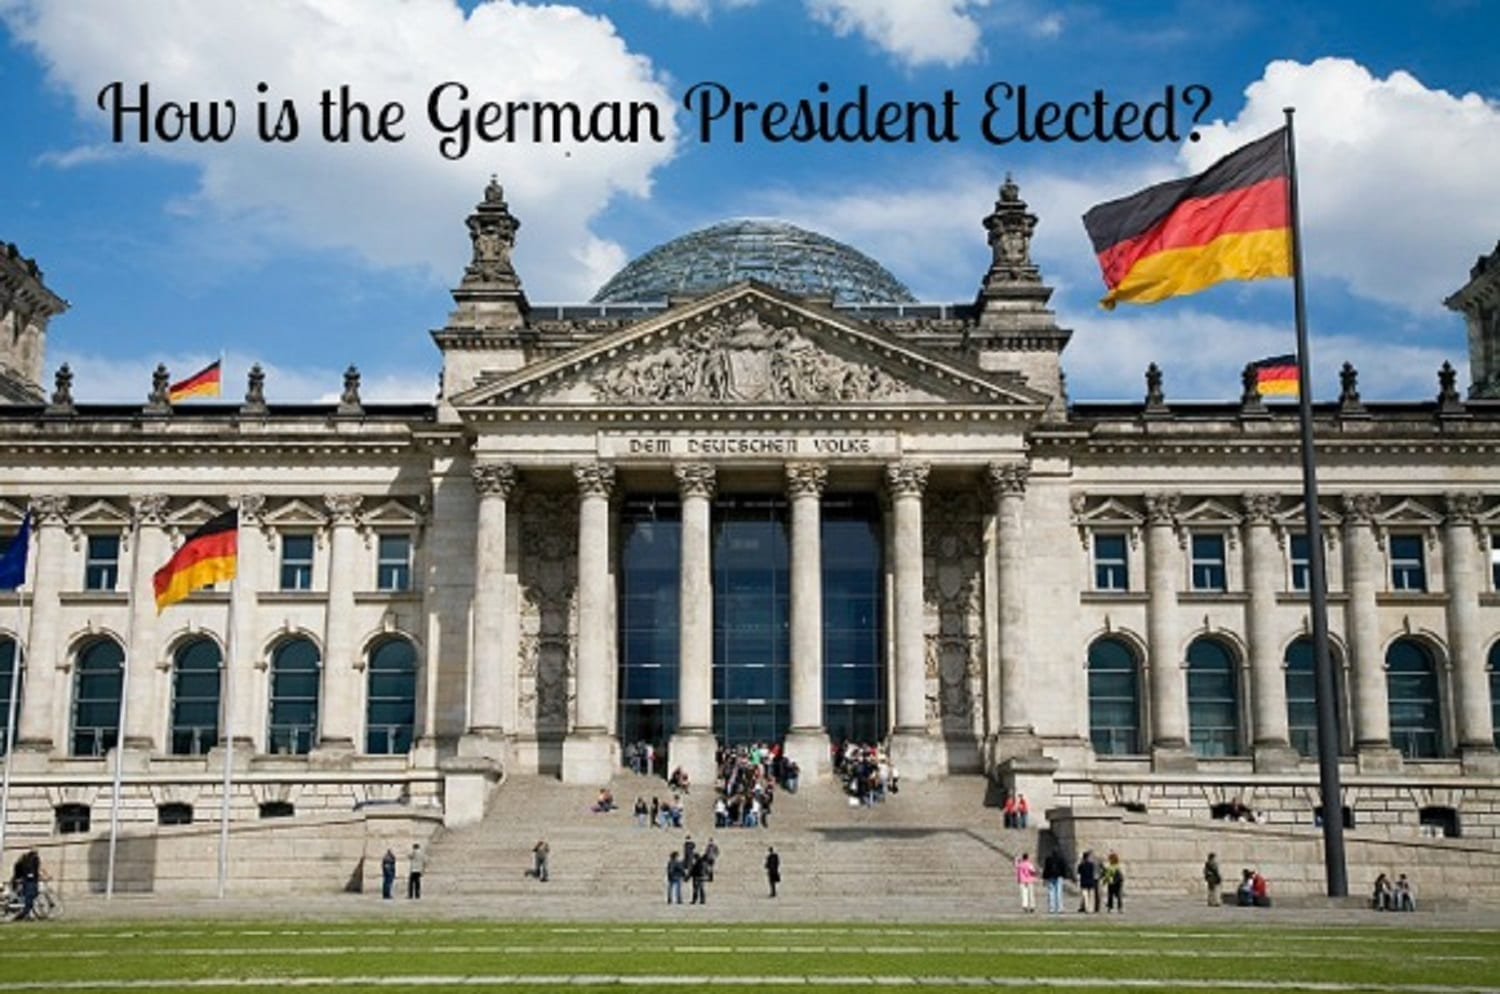 How is the German President Elected?